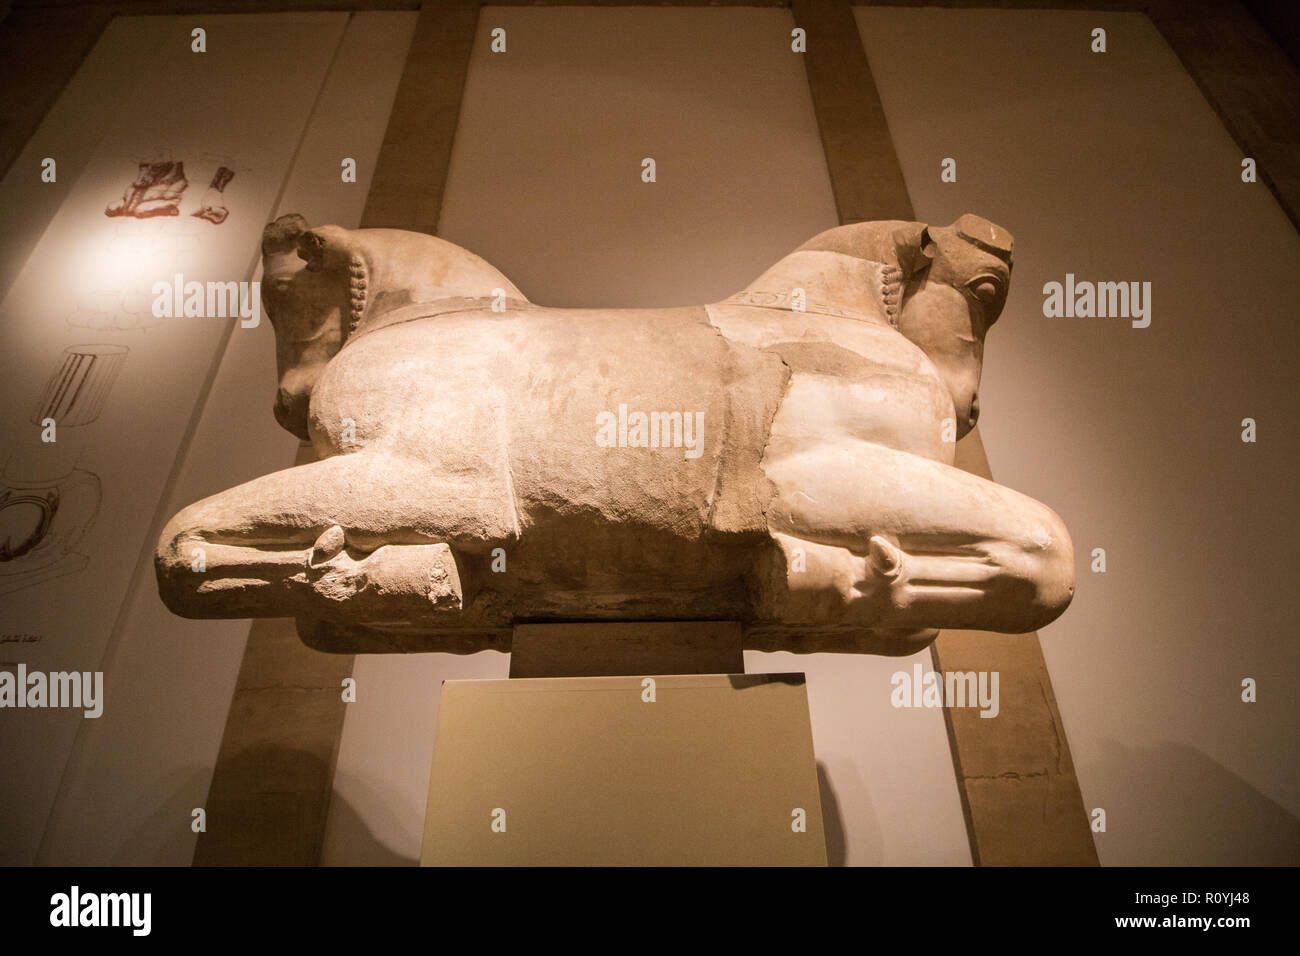 Beirut Lebanon. 8th November 2018. 'Capital with Bull Protomes, 5th c. AD. Sidon. A few foreign visitors trickle to visit the National Museum of Beirut which houses antiquities from the Phoenician, Roman, Byzantine and Ottoman Periods Credit: amer ghazzal/Alamy Live News - Stock Image